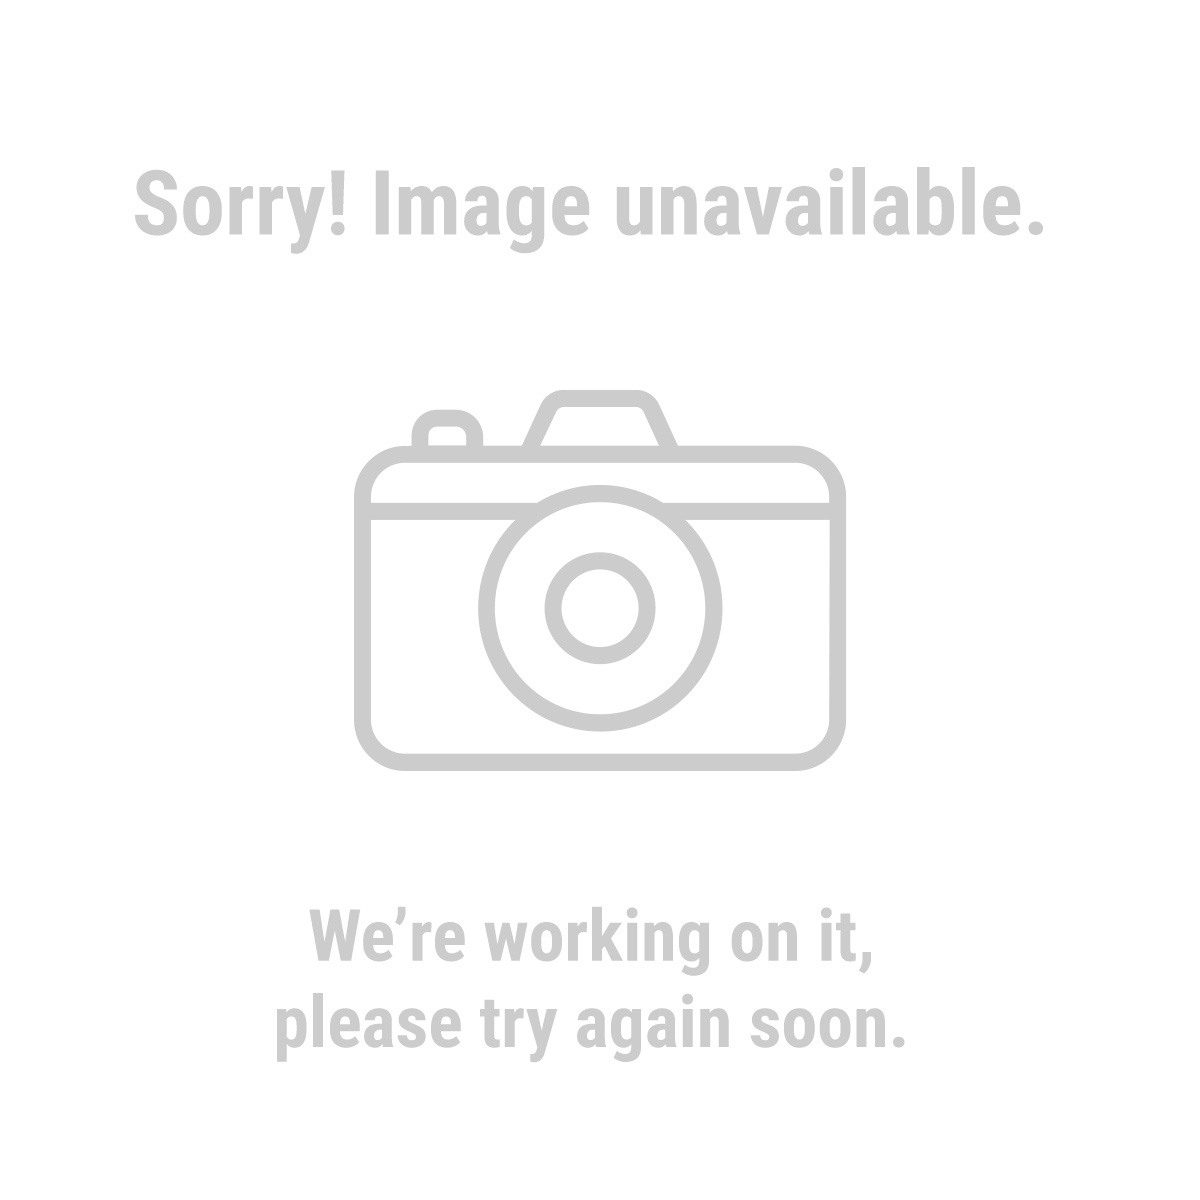 Warrior 68114 10 Piece Carbon Steel Hole Saw Set